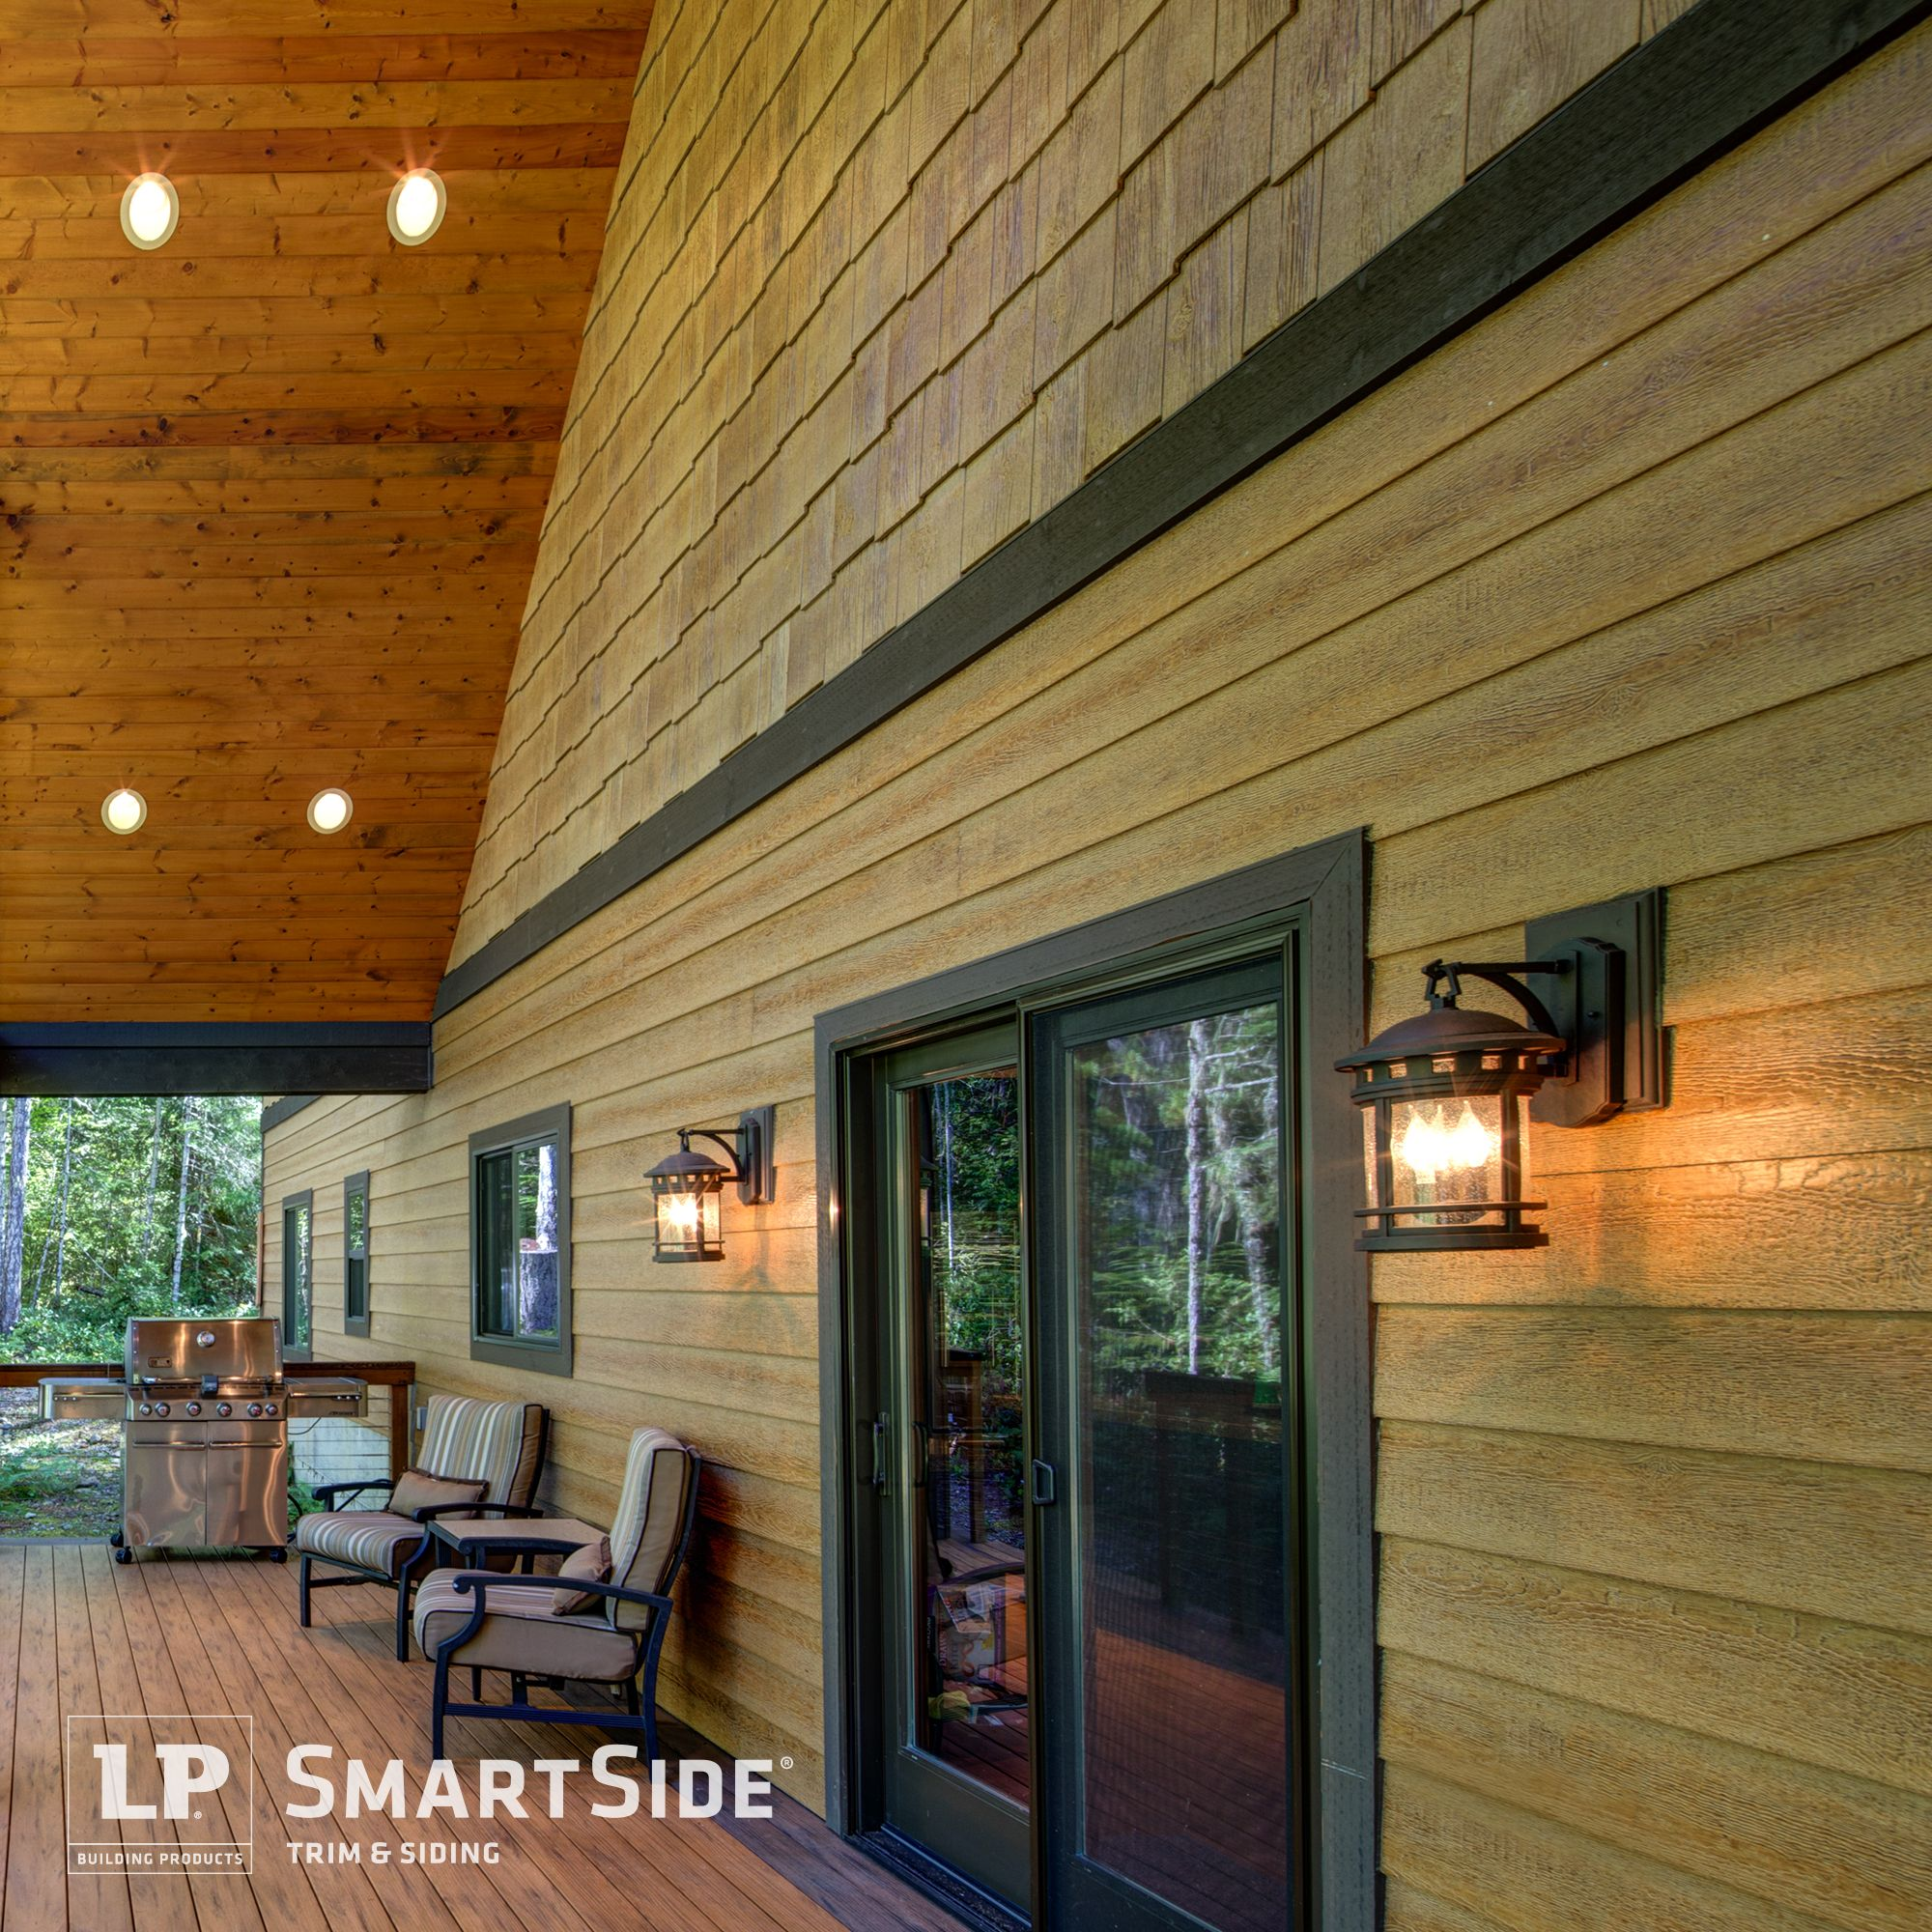 A Back Patio Complemented With Lp Smartside Lap Siding And Cedar Shakes Creates An Outdoor Oasis Engineered Wood Siding Rustic Houses Exterior Siding Trim